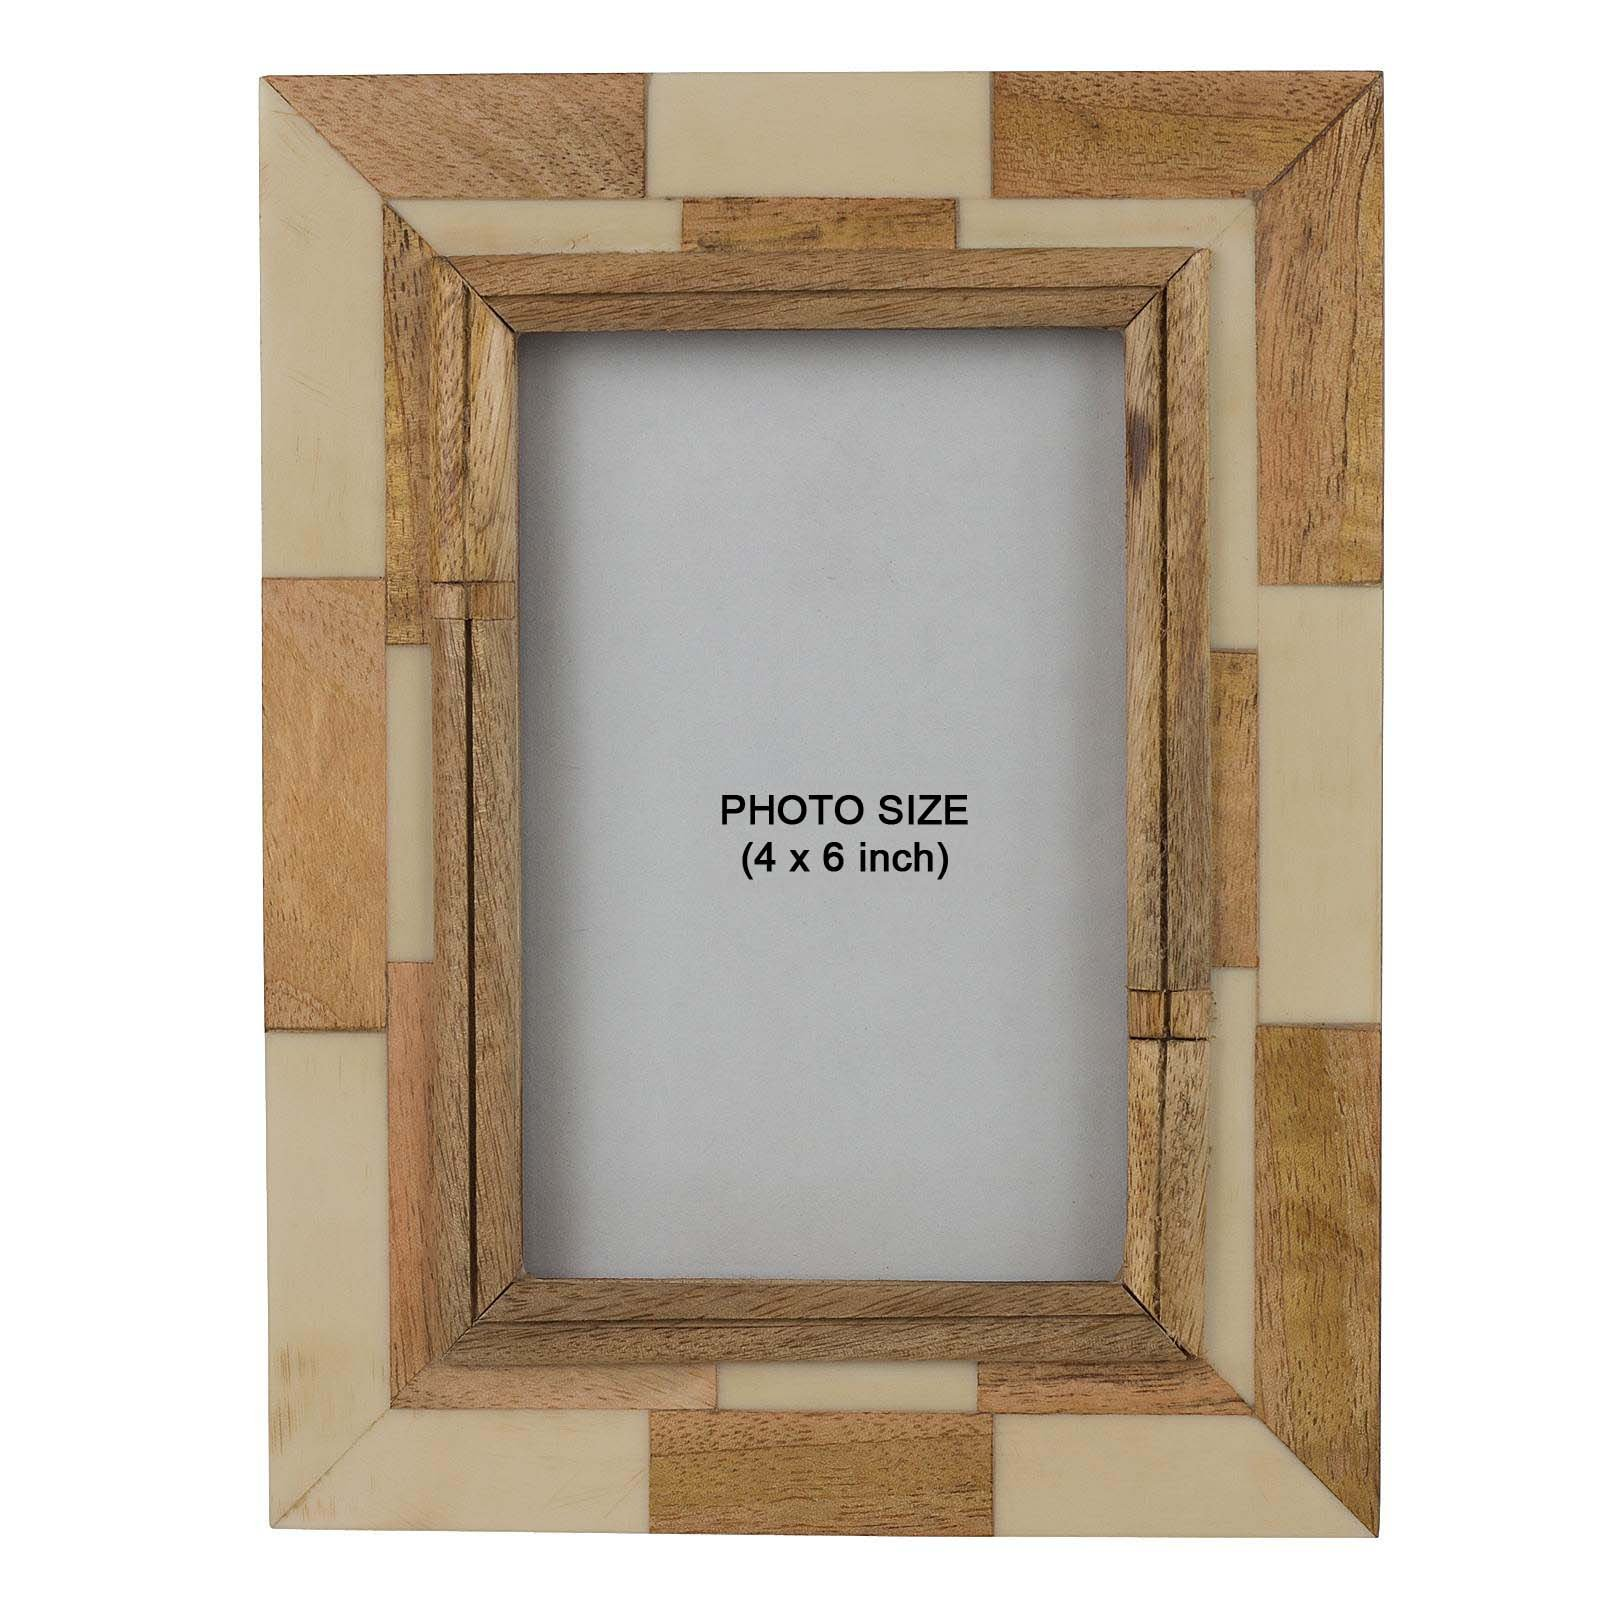 Fine Craft India Wooden Photo Frame Photo Size 4 x 6 inch MPN-wooden_photo_frame_7